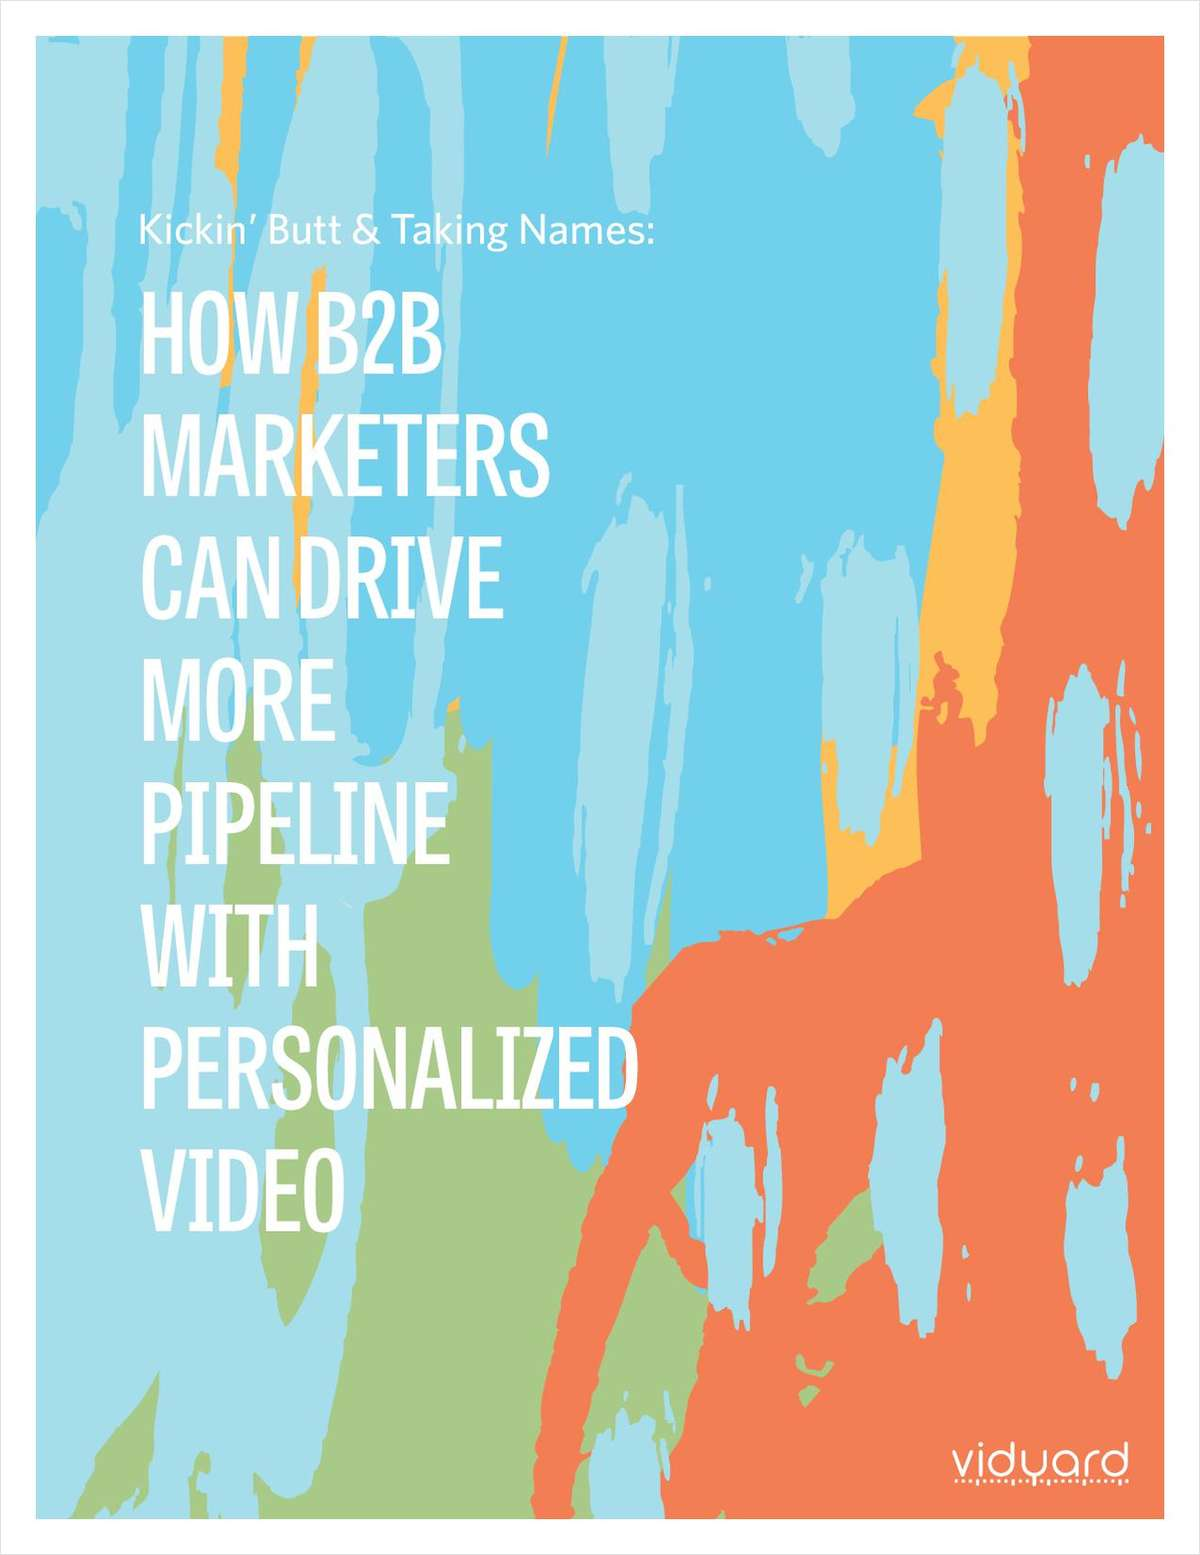 How B2B Marketers Can Drive More Pipeline With Personalized Video